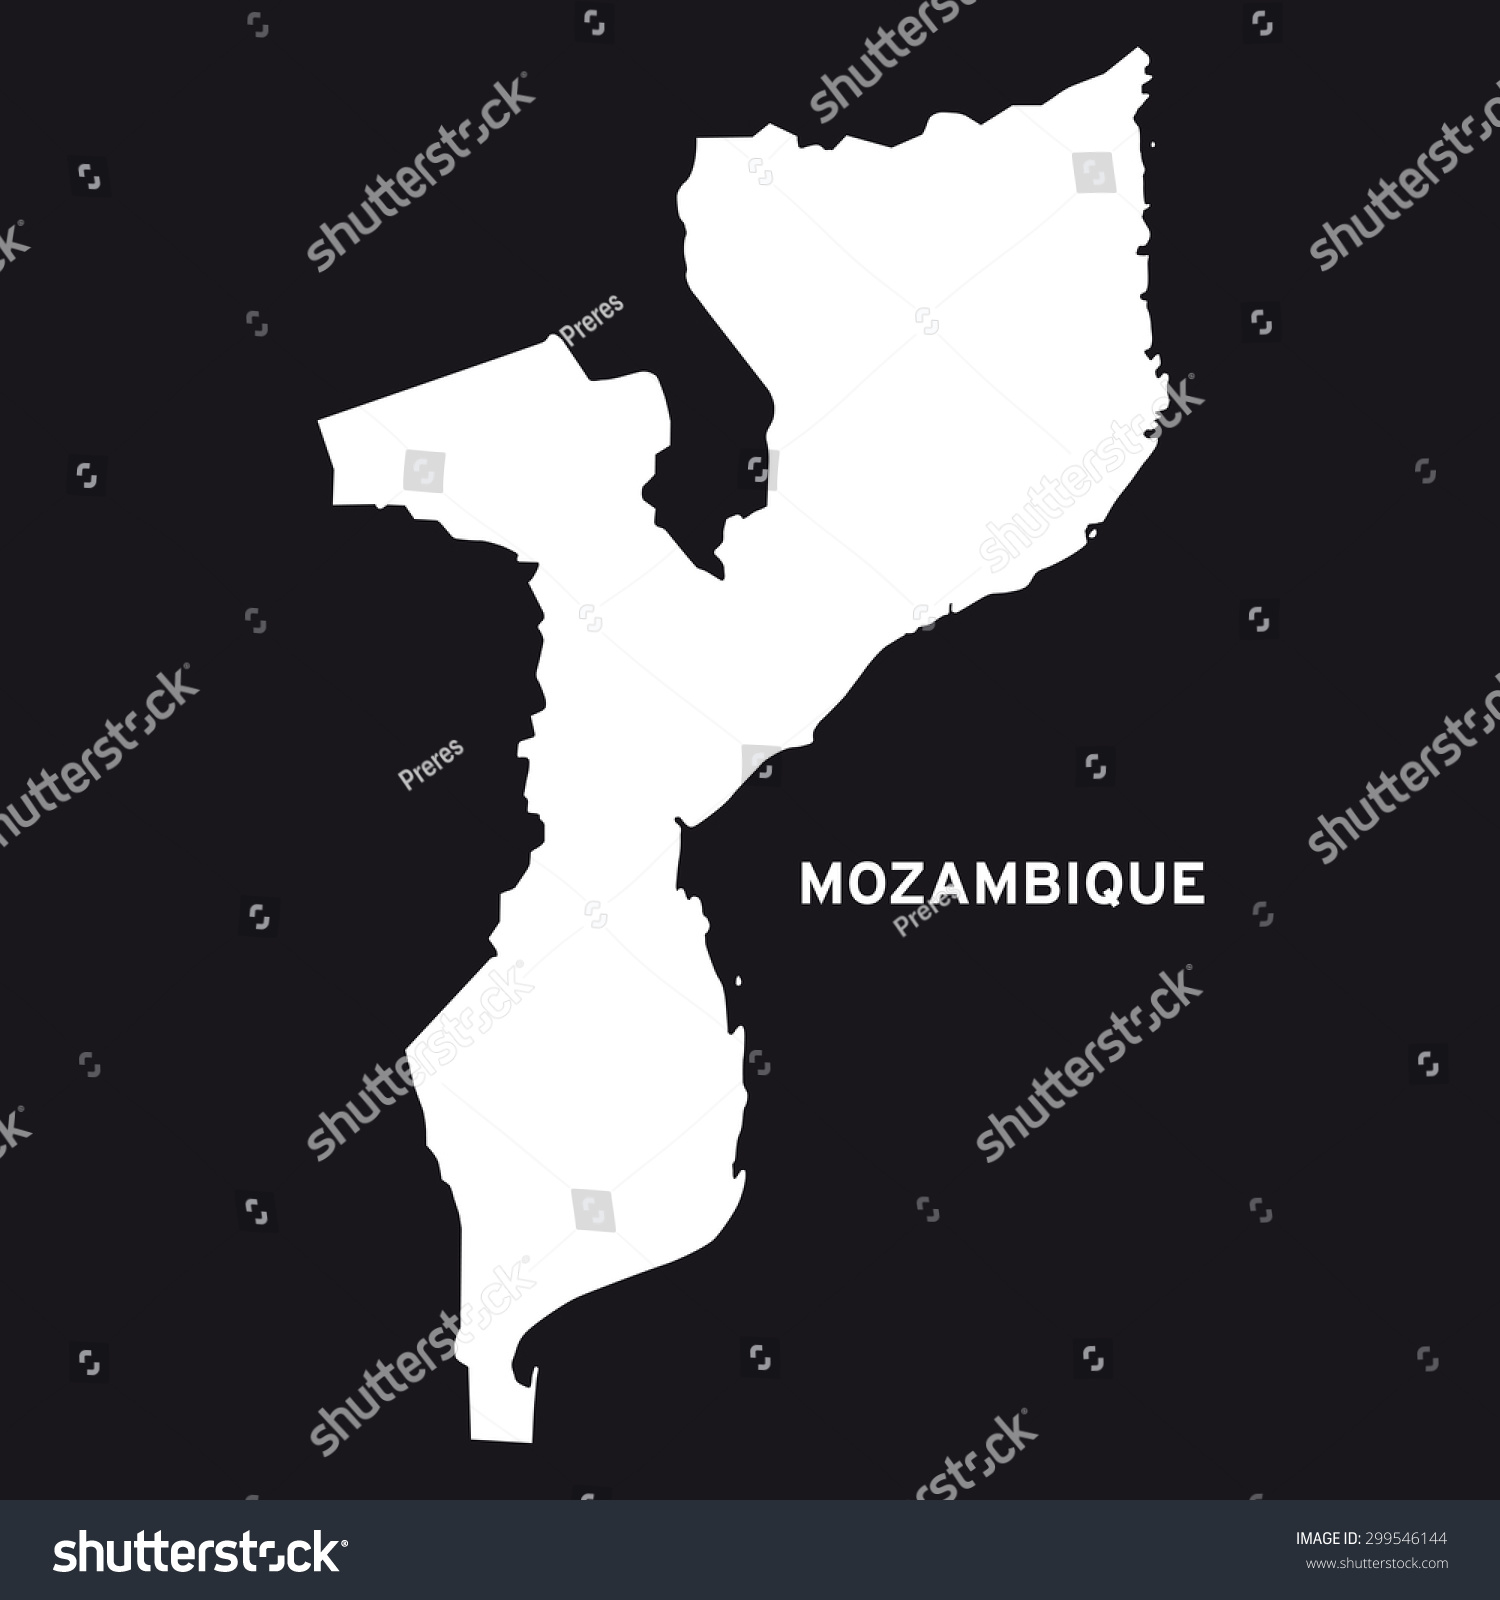 Africa Map Mozambique%0A Mozambique Map Vector Stock Vector           Shutterstock Stock Vector Mozambique  Map Vector           Mozambique Map Vector